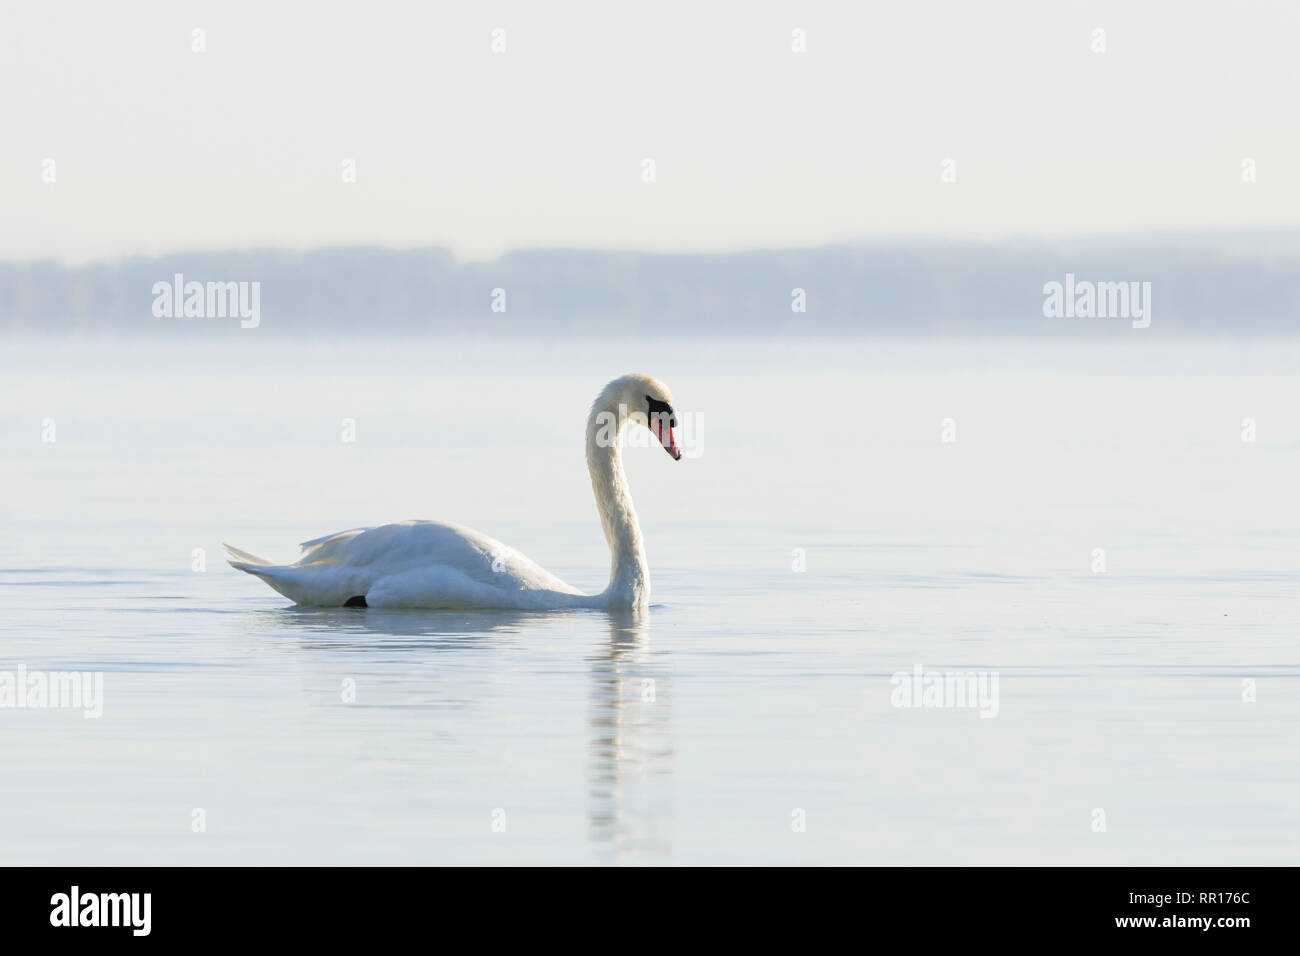 zoology / animals, birds (Aves), swan, Mute Swan (Cygnus olor), Switzerland, Additional-Rights-Clearance-Info-Not-Available - Stock Image